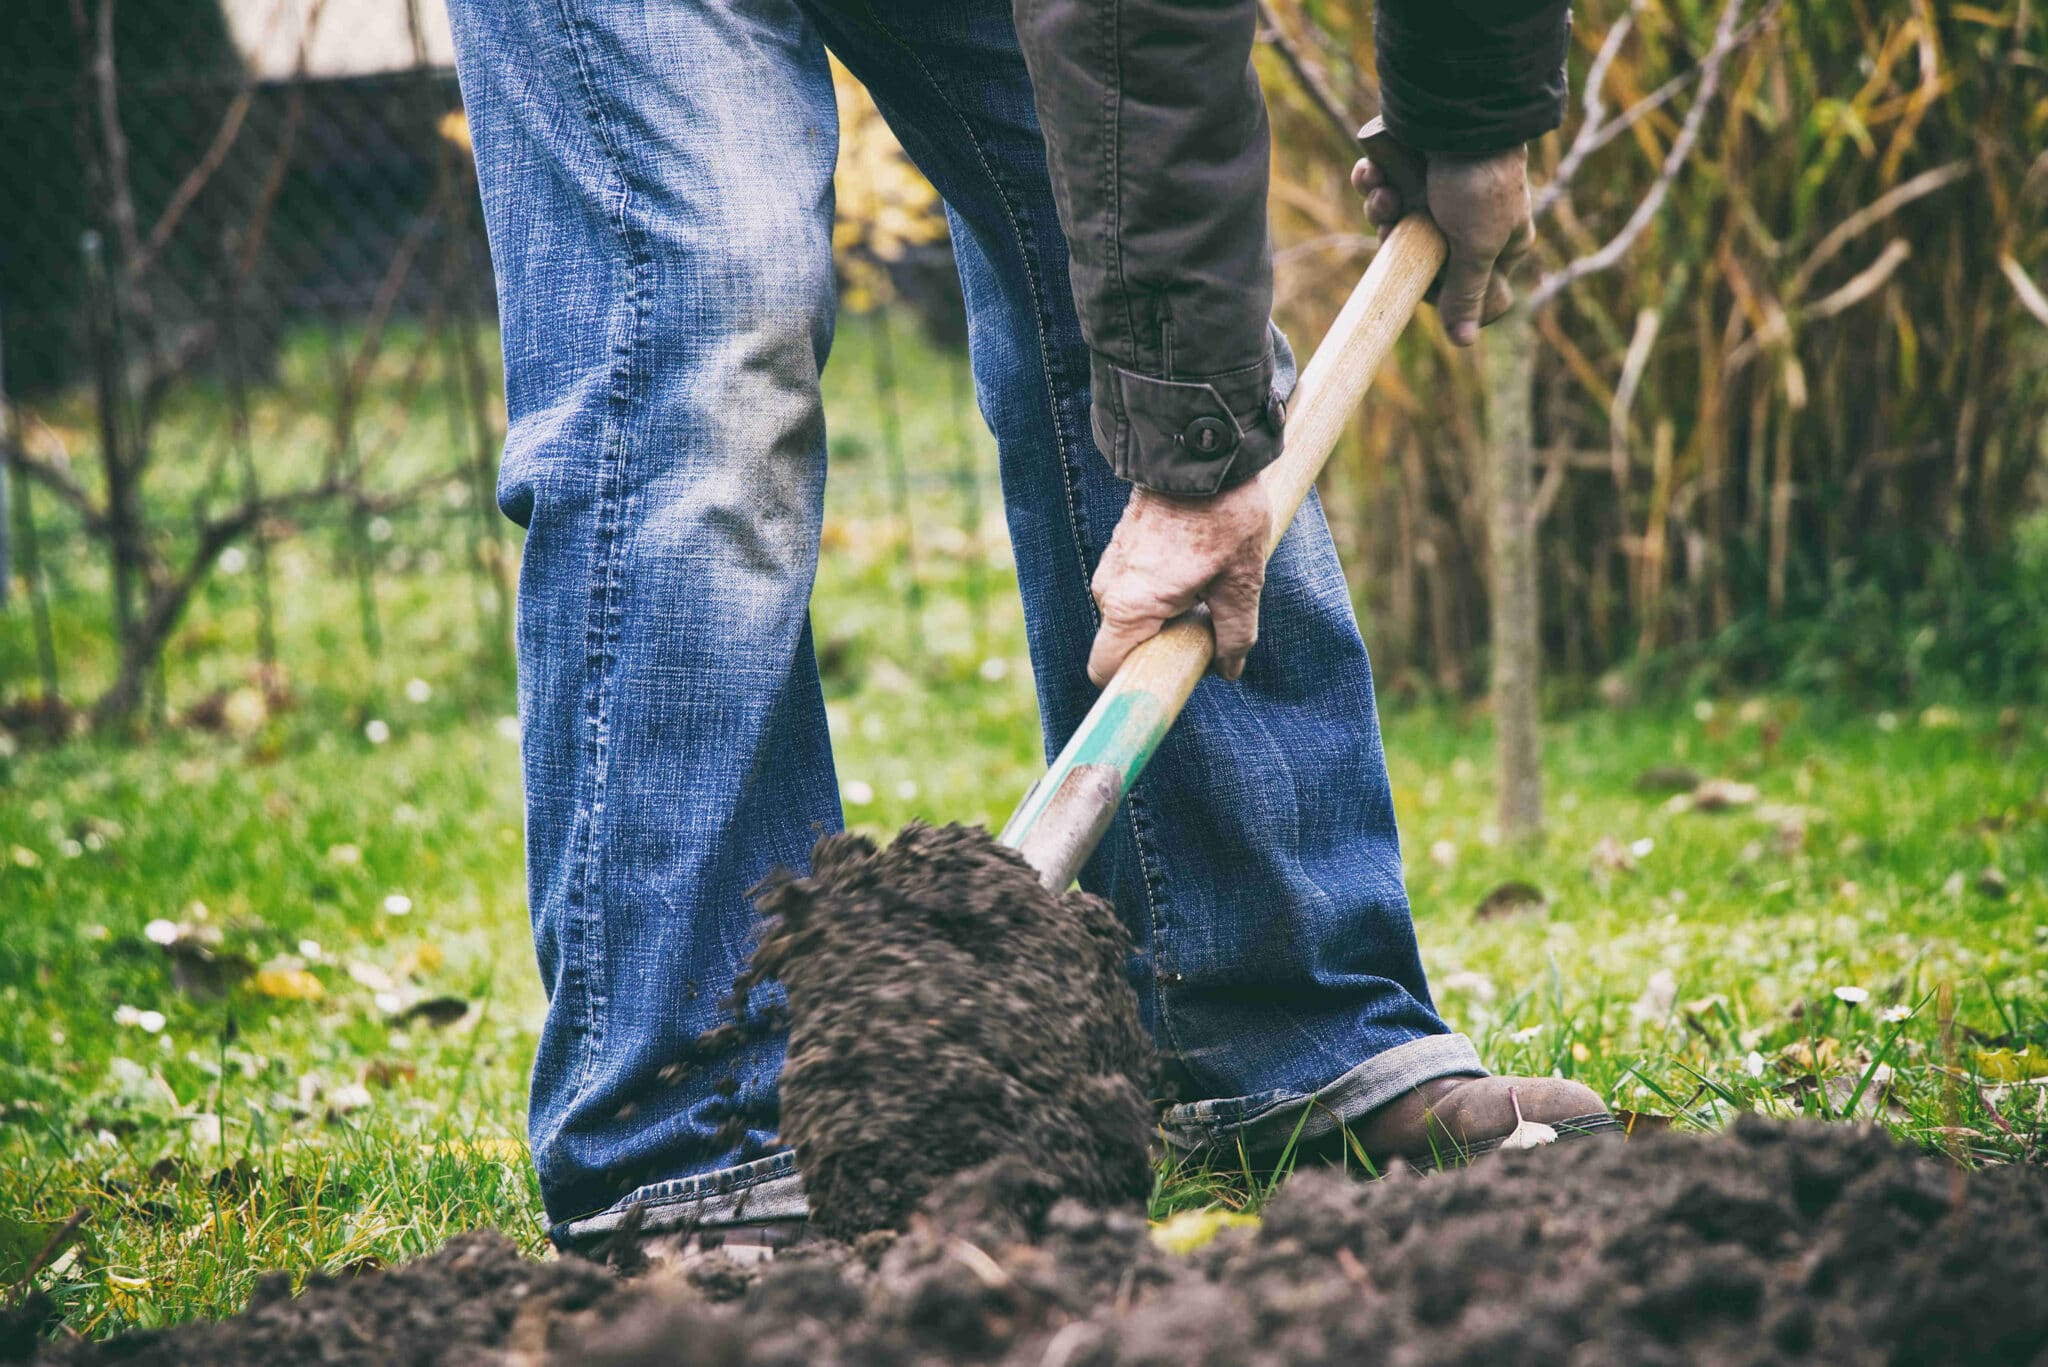 Man digging in soil, turning over garden bed, shovelling soil